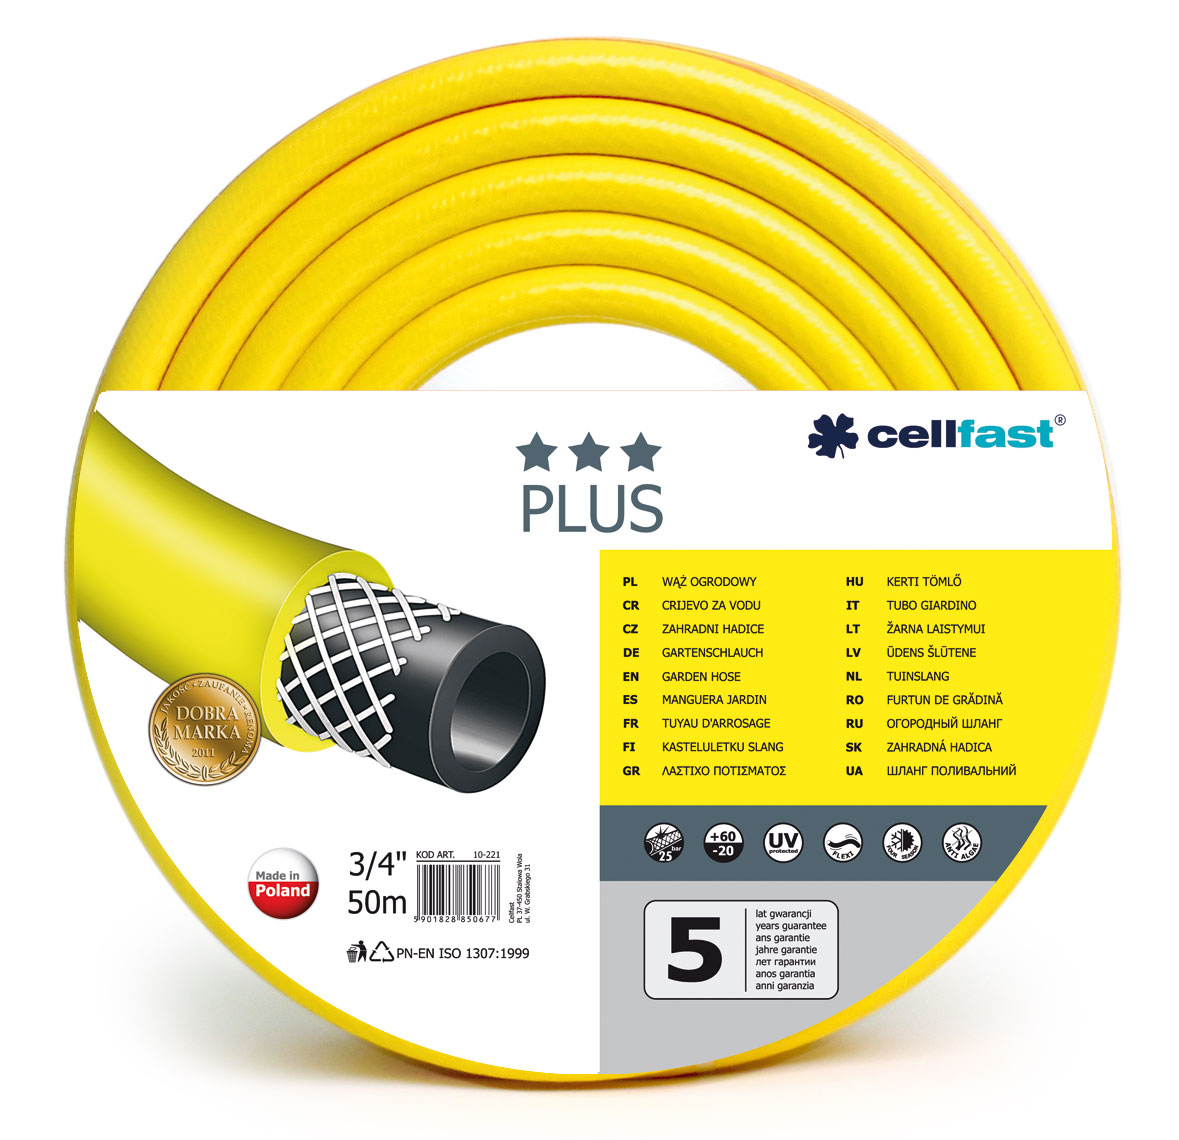 Cellfast Garden hose Plus 3/4